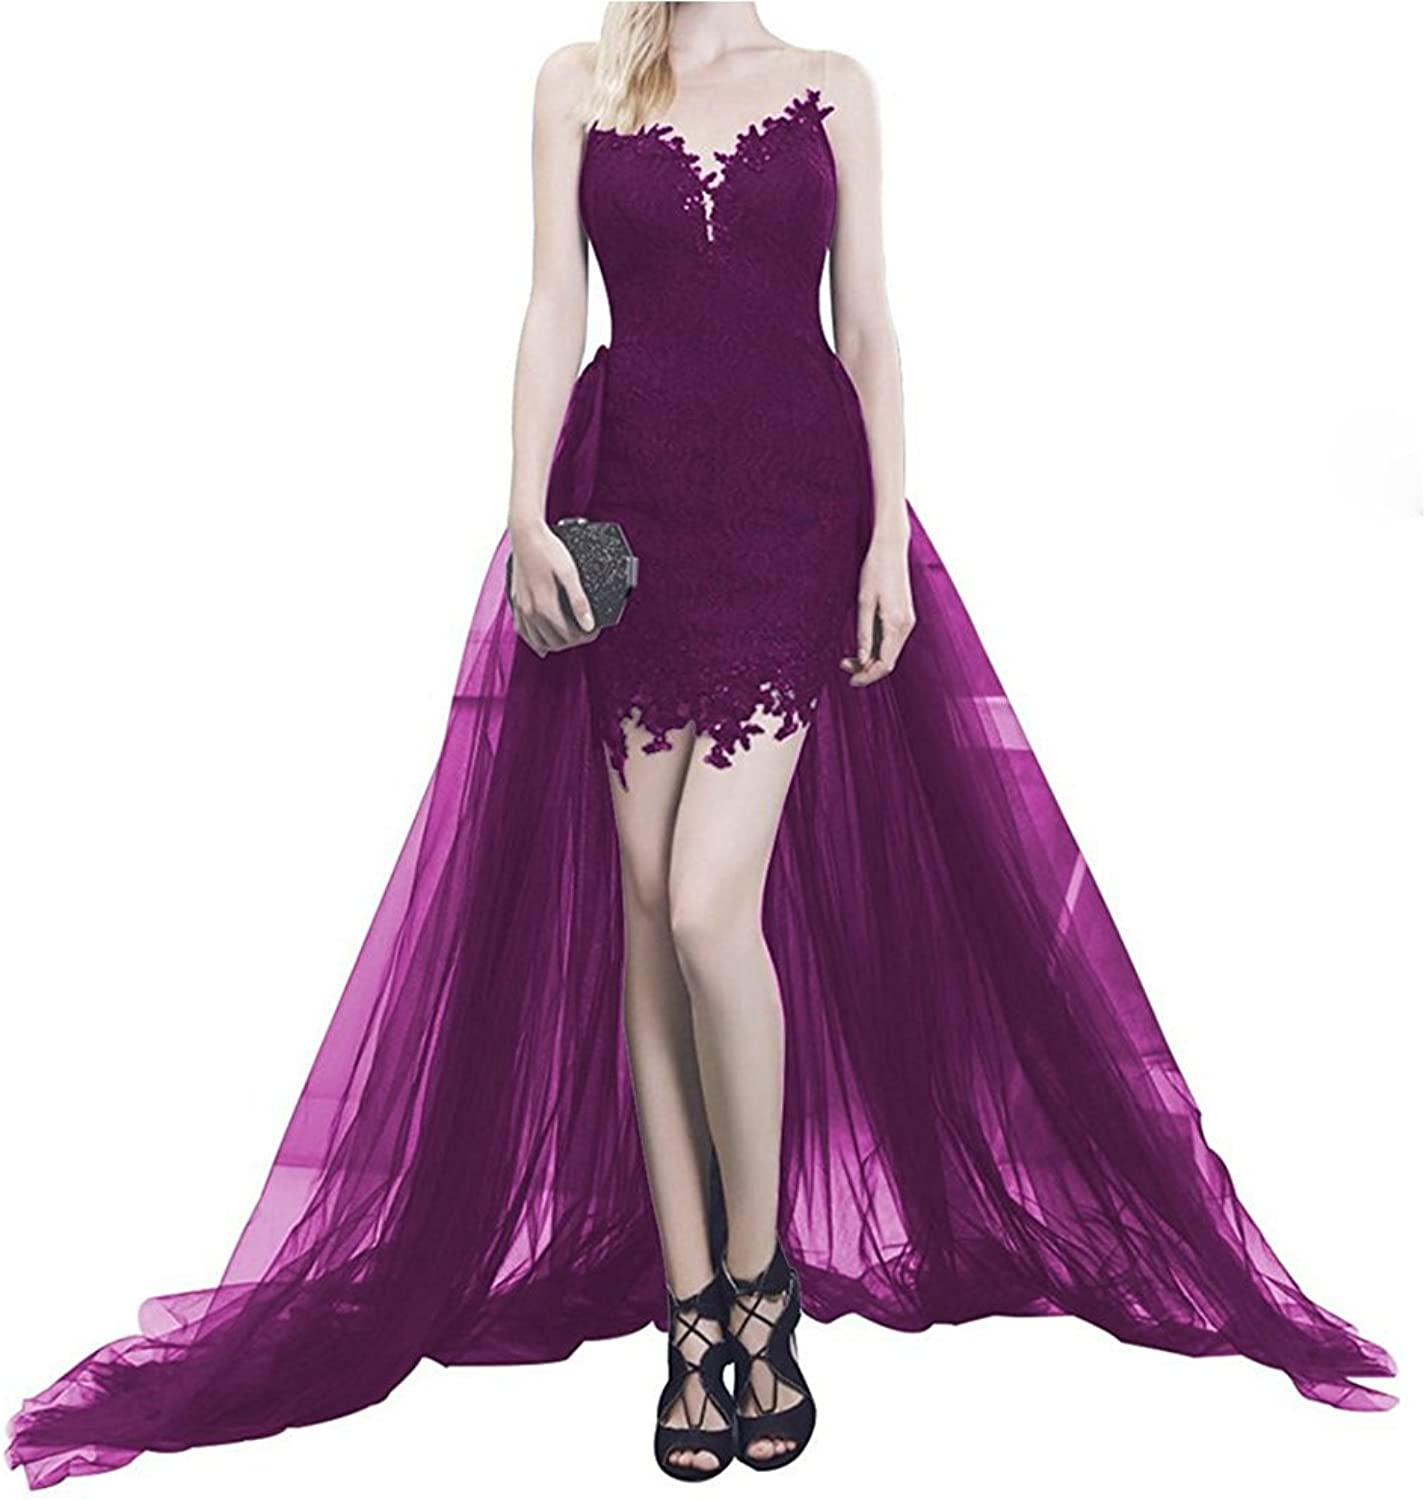 Honeydress Women's Invisibility Straps Sexy Lace Short Prom Dress with Train